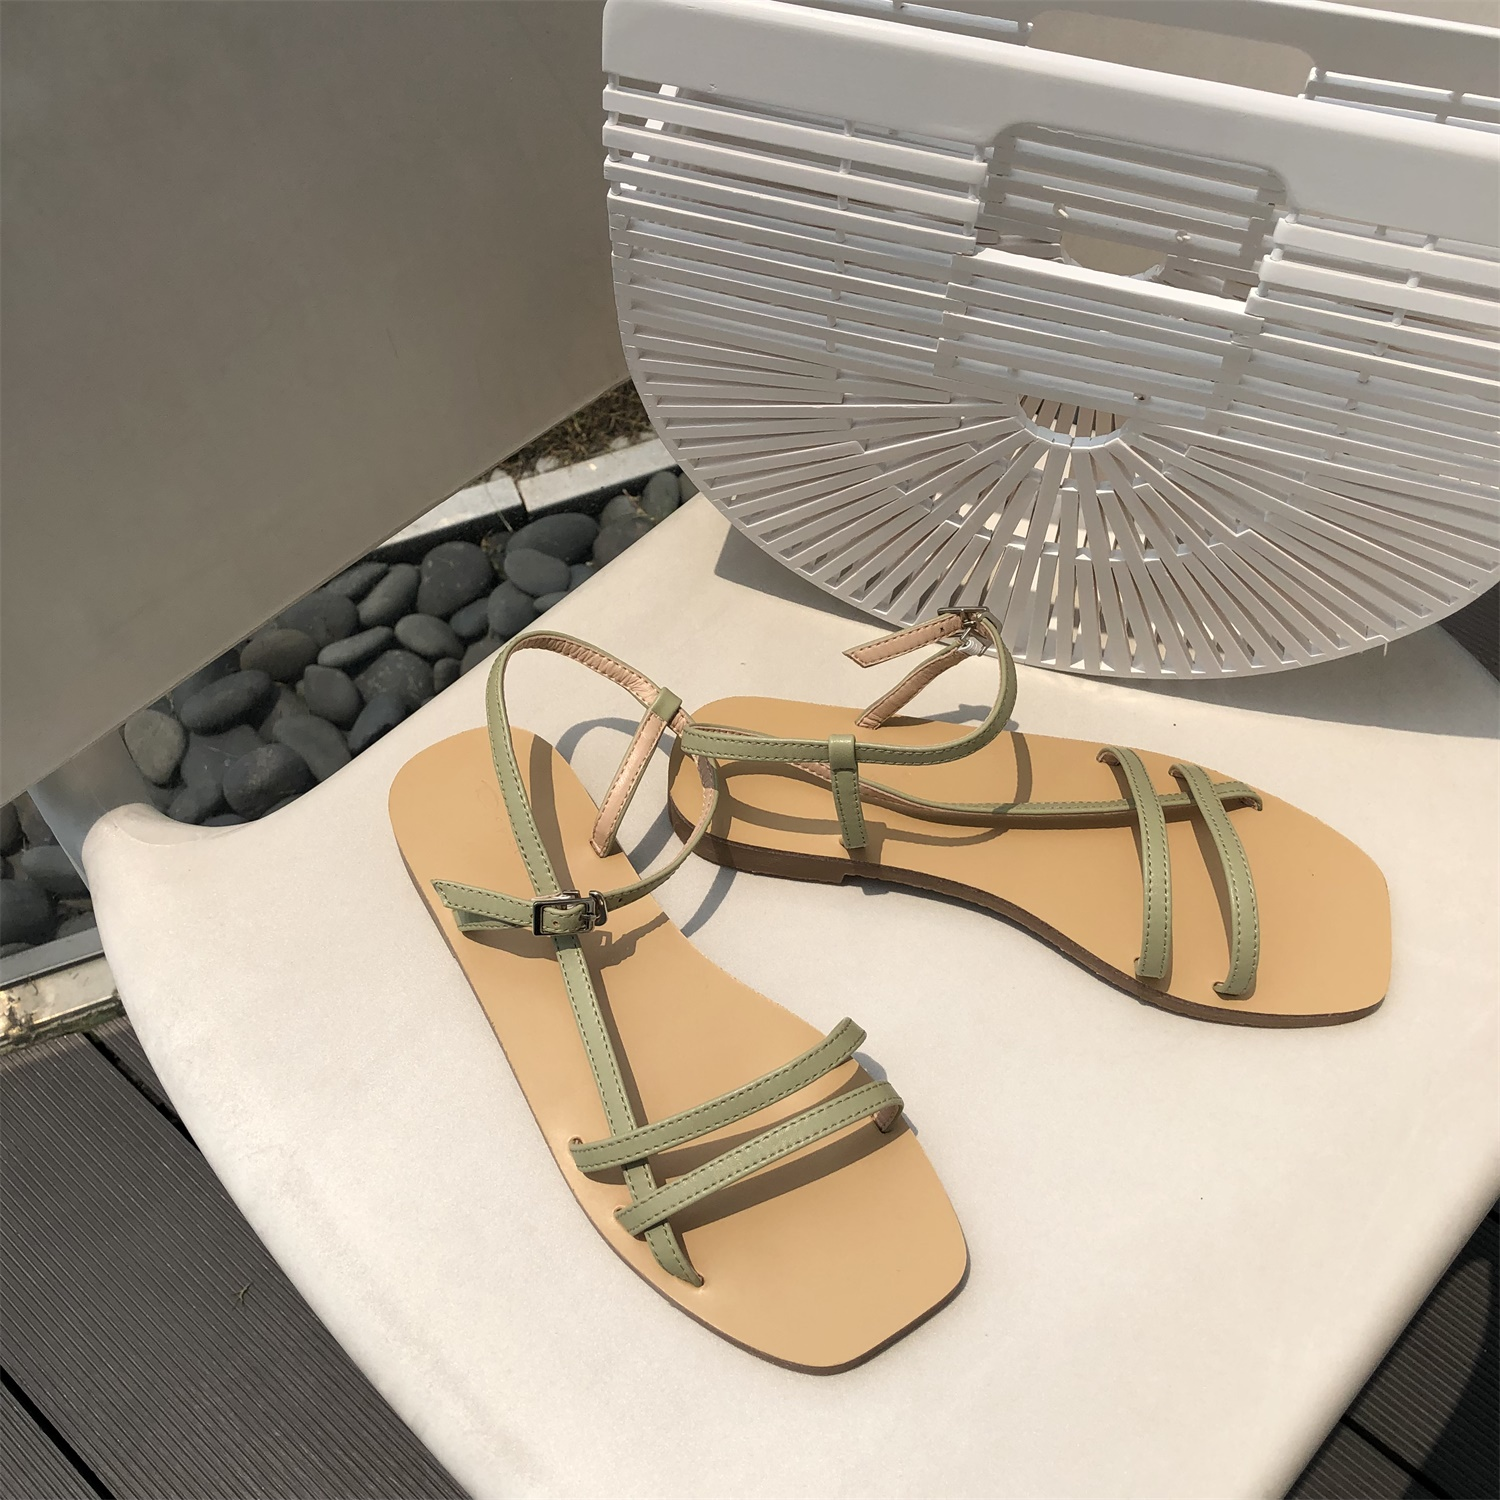 Women Summer Sandals Roma Lace Up Peep Toe Flat Sandals Casual Platform Gladiator Slingback Sandals Narrow Band Slides Shoes in Women 39 s Sandals from Shoes